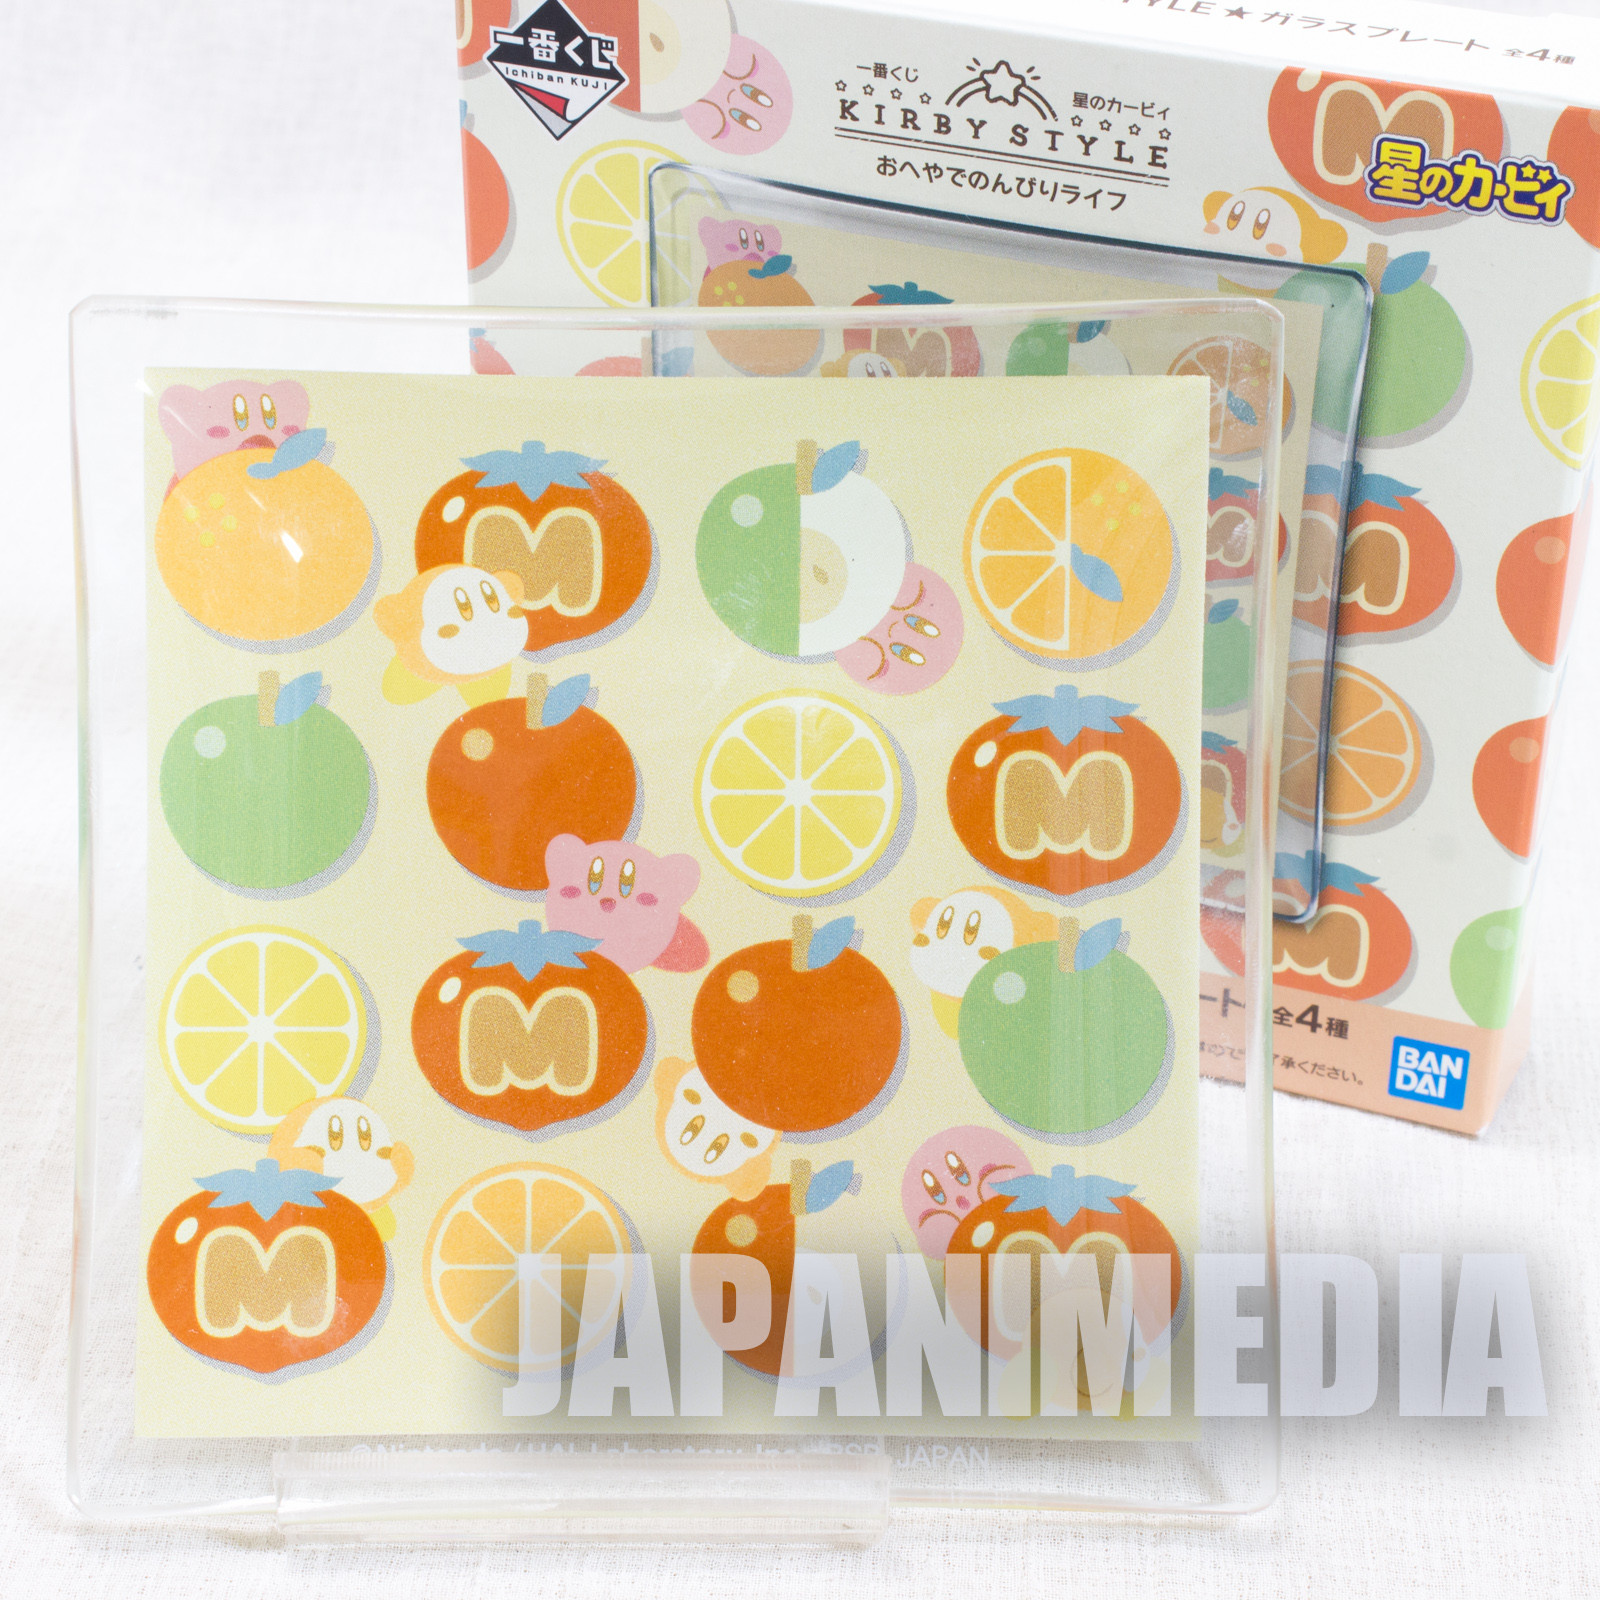 Kirby Super Star Style Glass Plate #2 BANDAI JAPAN GAME NINTNEDO